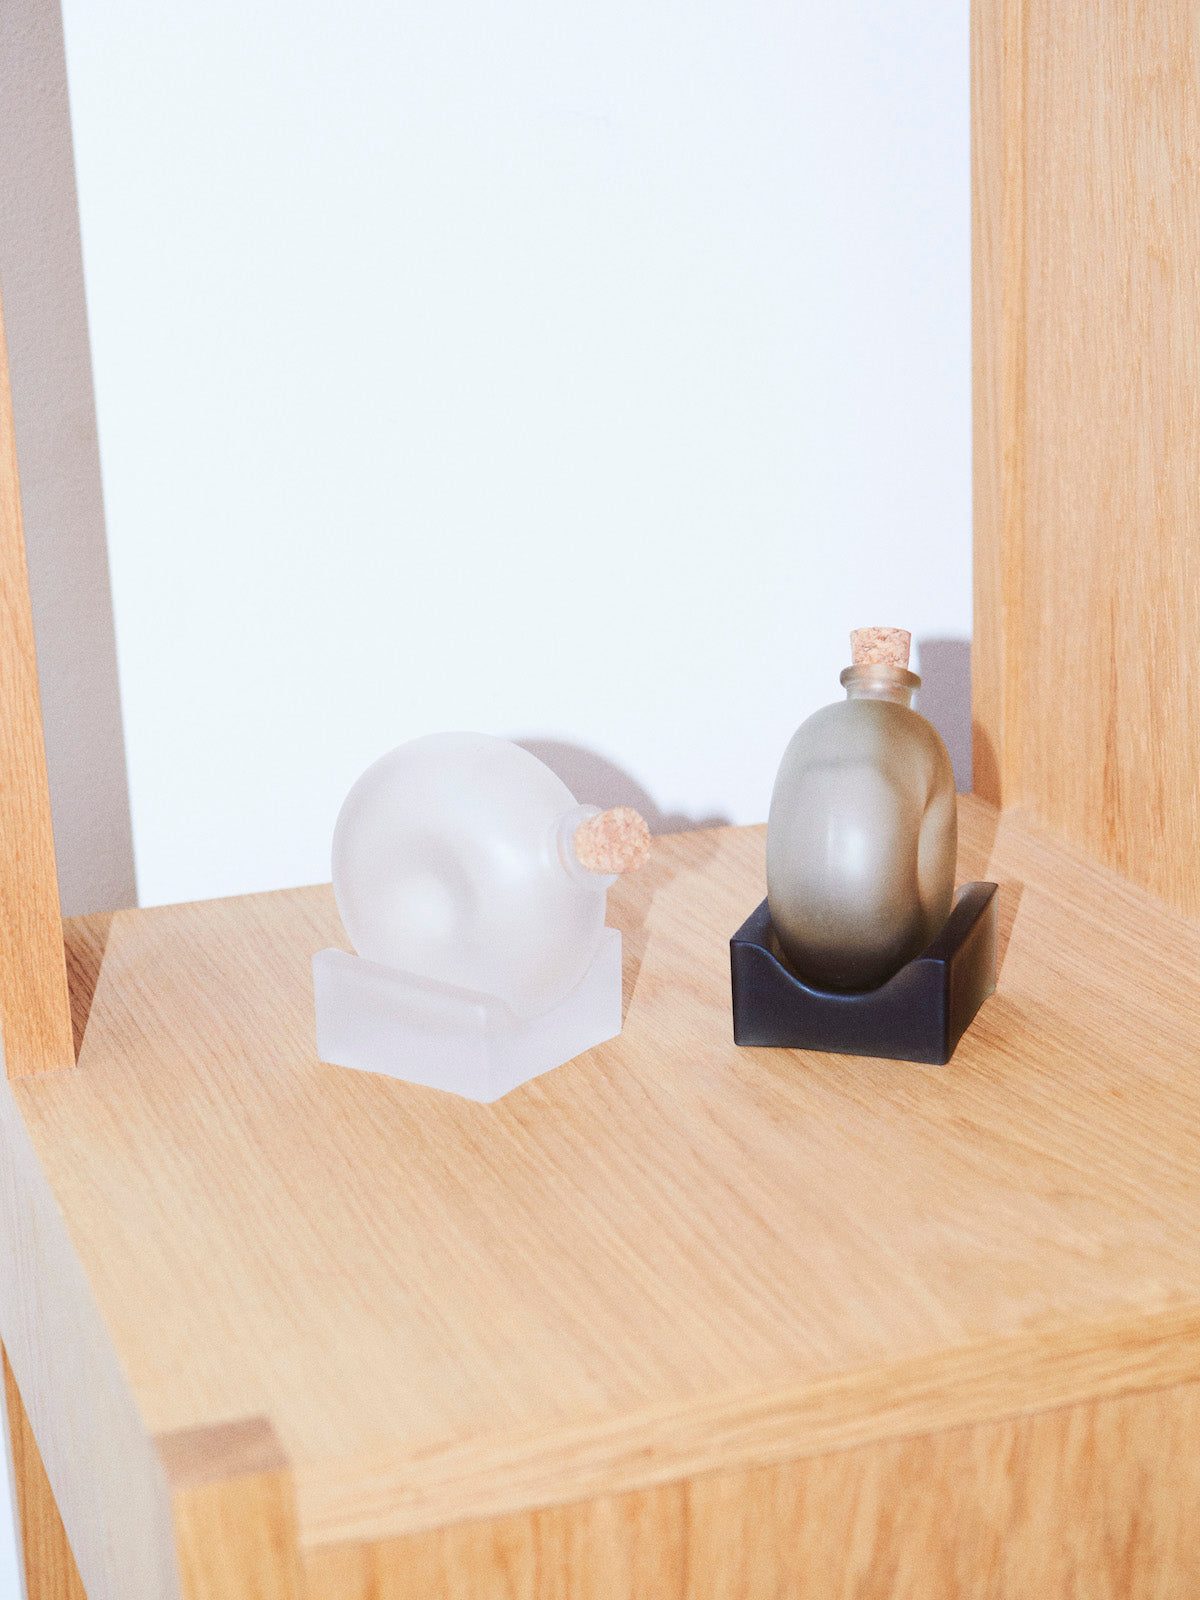 Valerie Objects Mortar and Bottle of Spices by Nendo